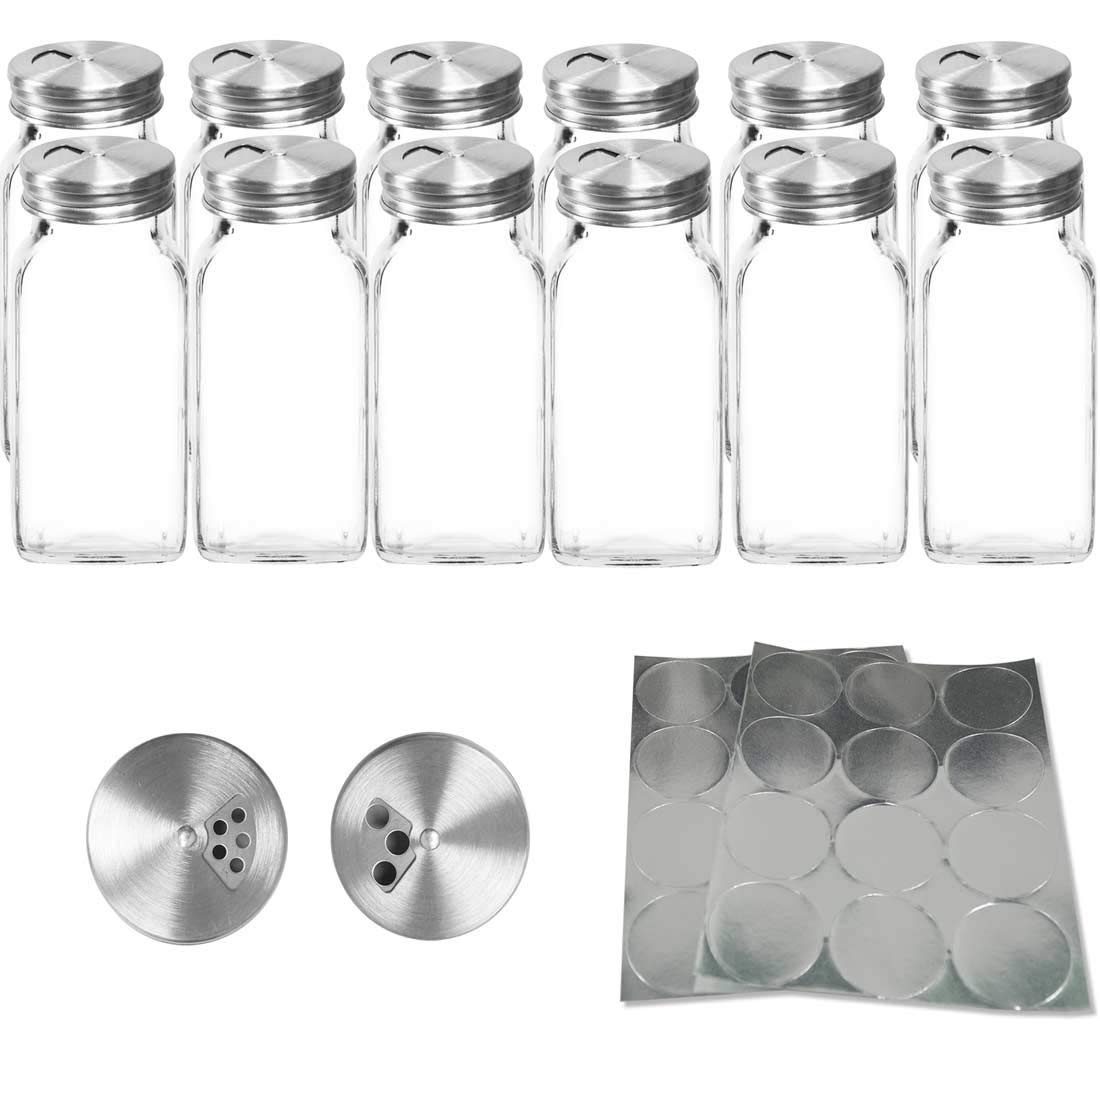 12 Square Glass Spice Containers 6 oz Jars with Stainless Steel Dispenser Lids by SpiceLuxe